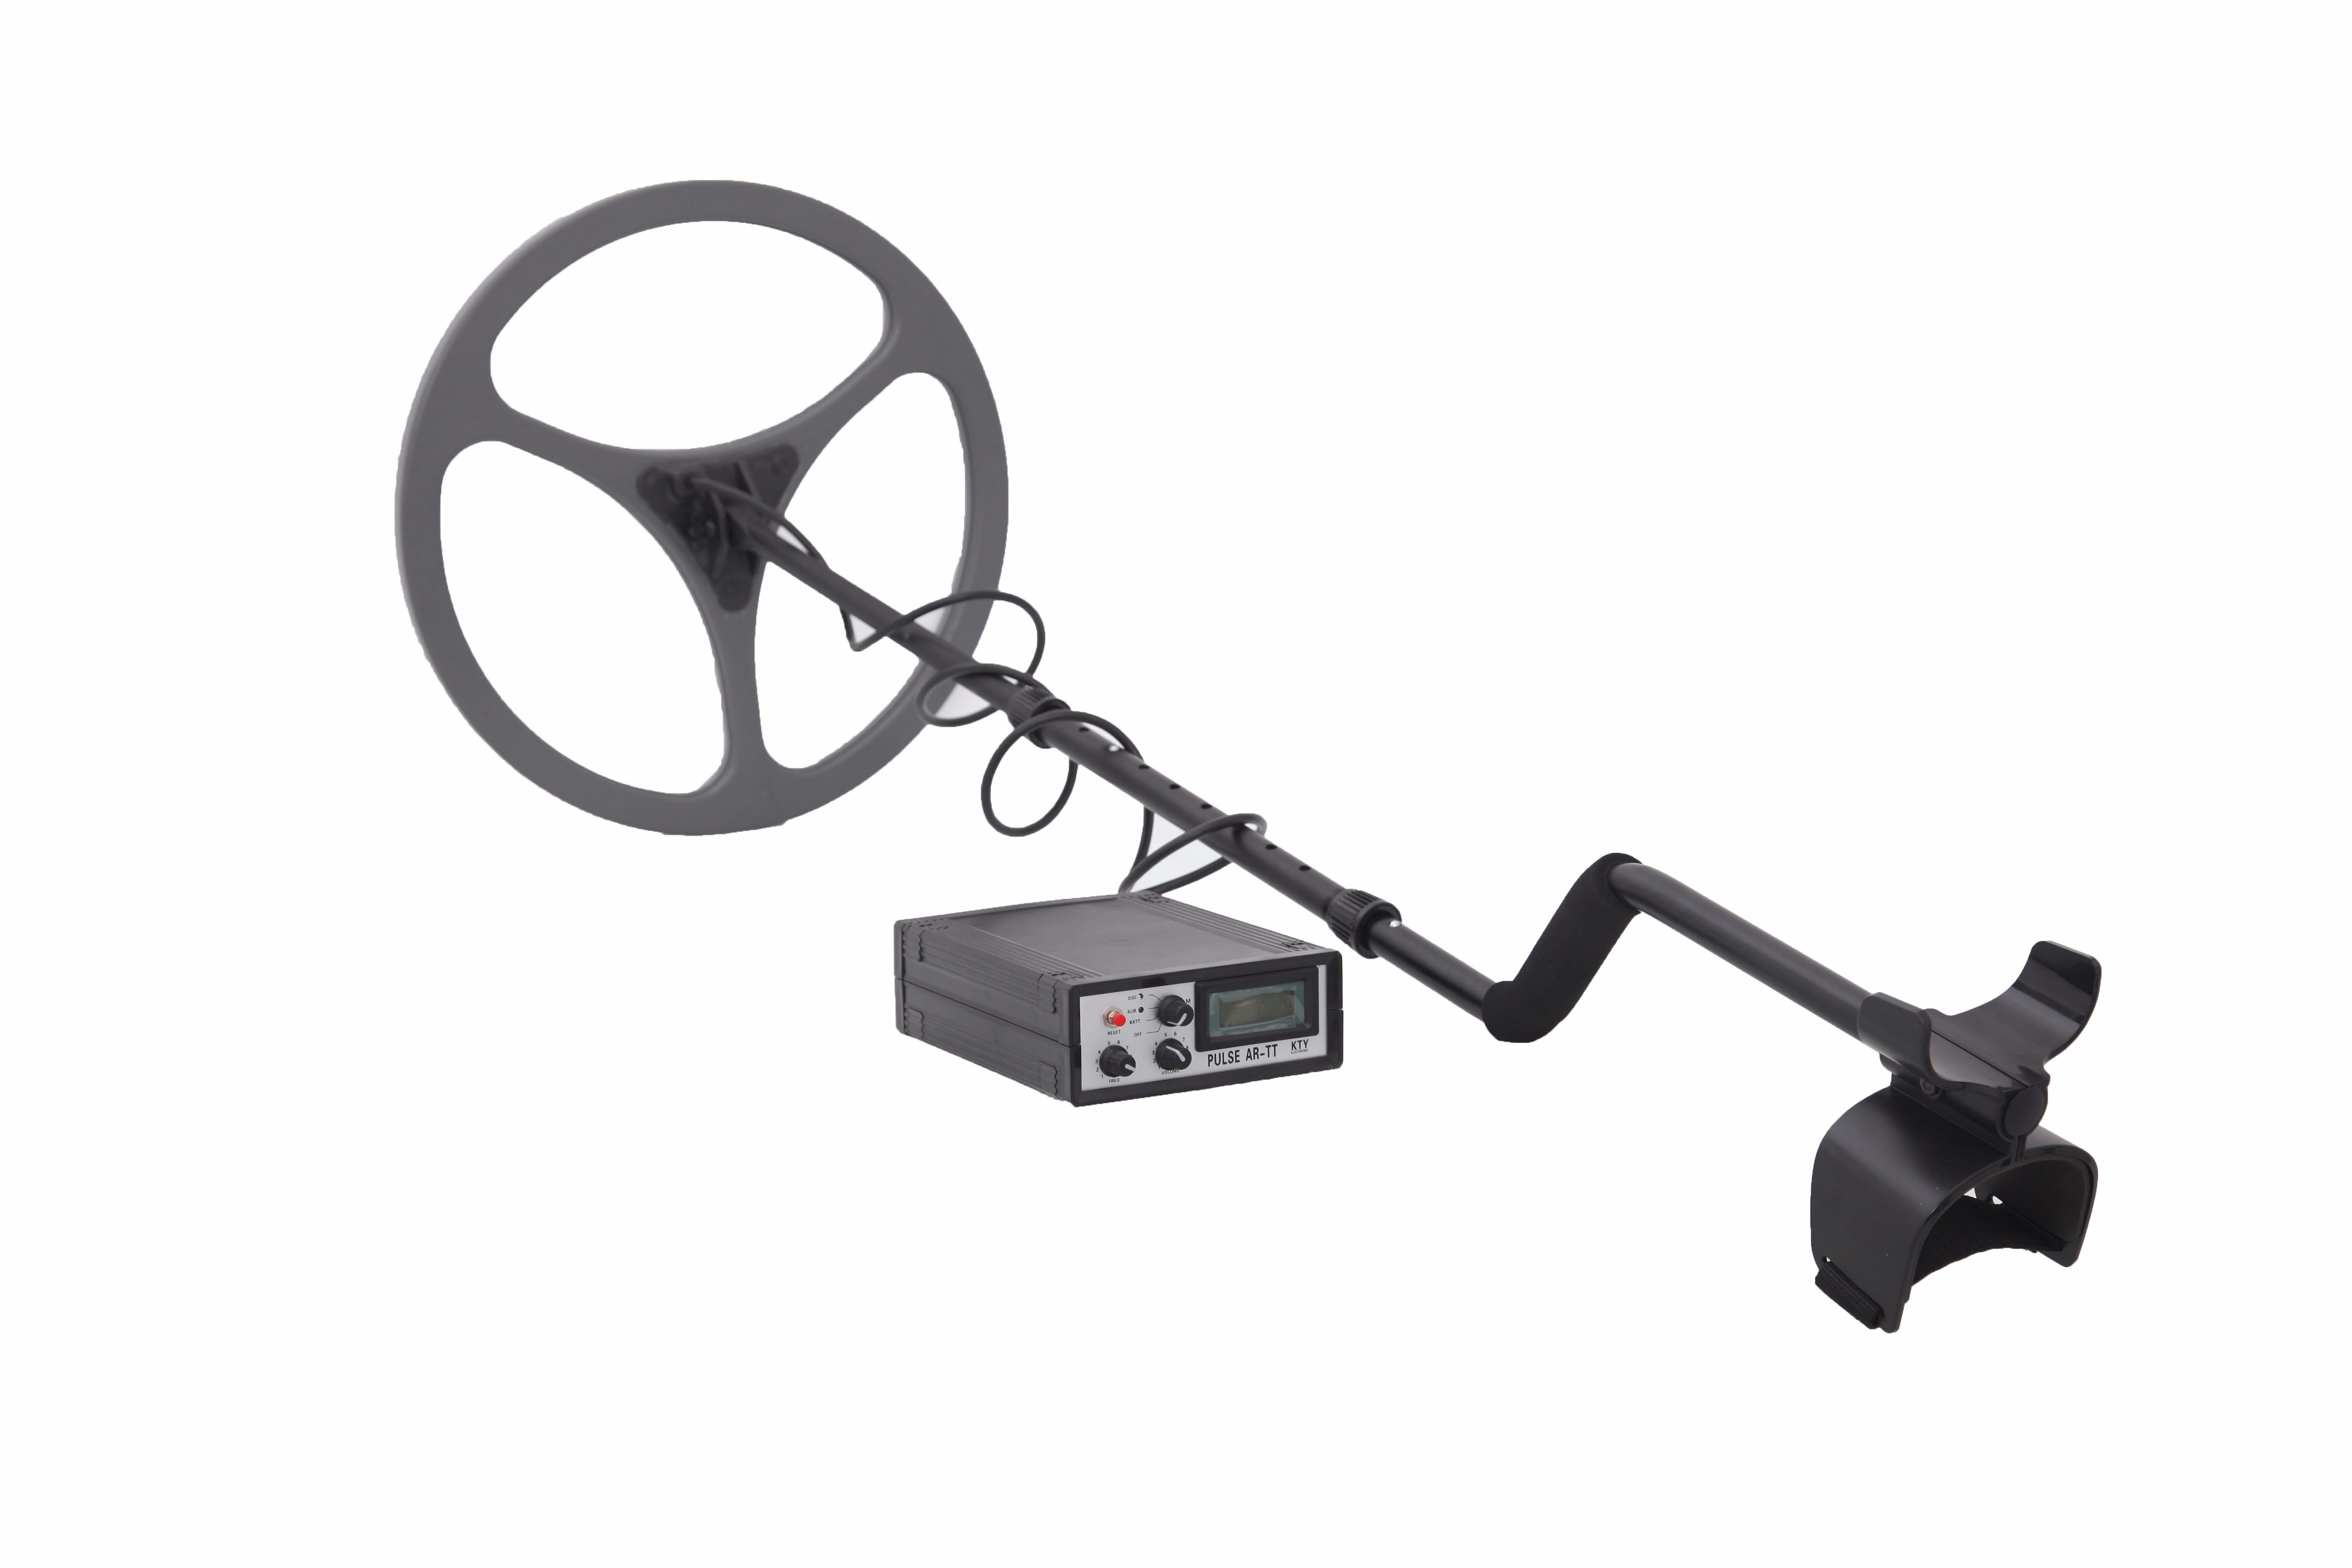 China German Kts Underground High Depth Pulse Induction Metal Detector Circuit As Well Kty